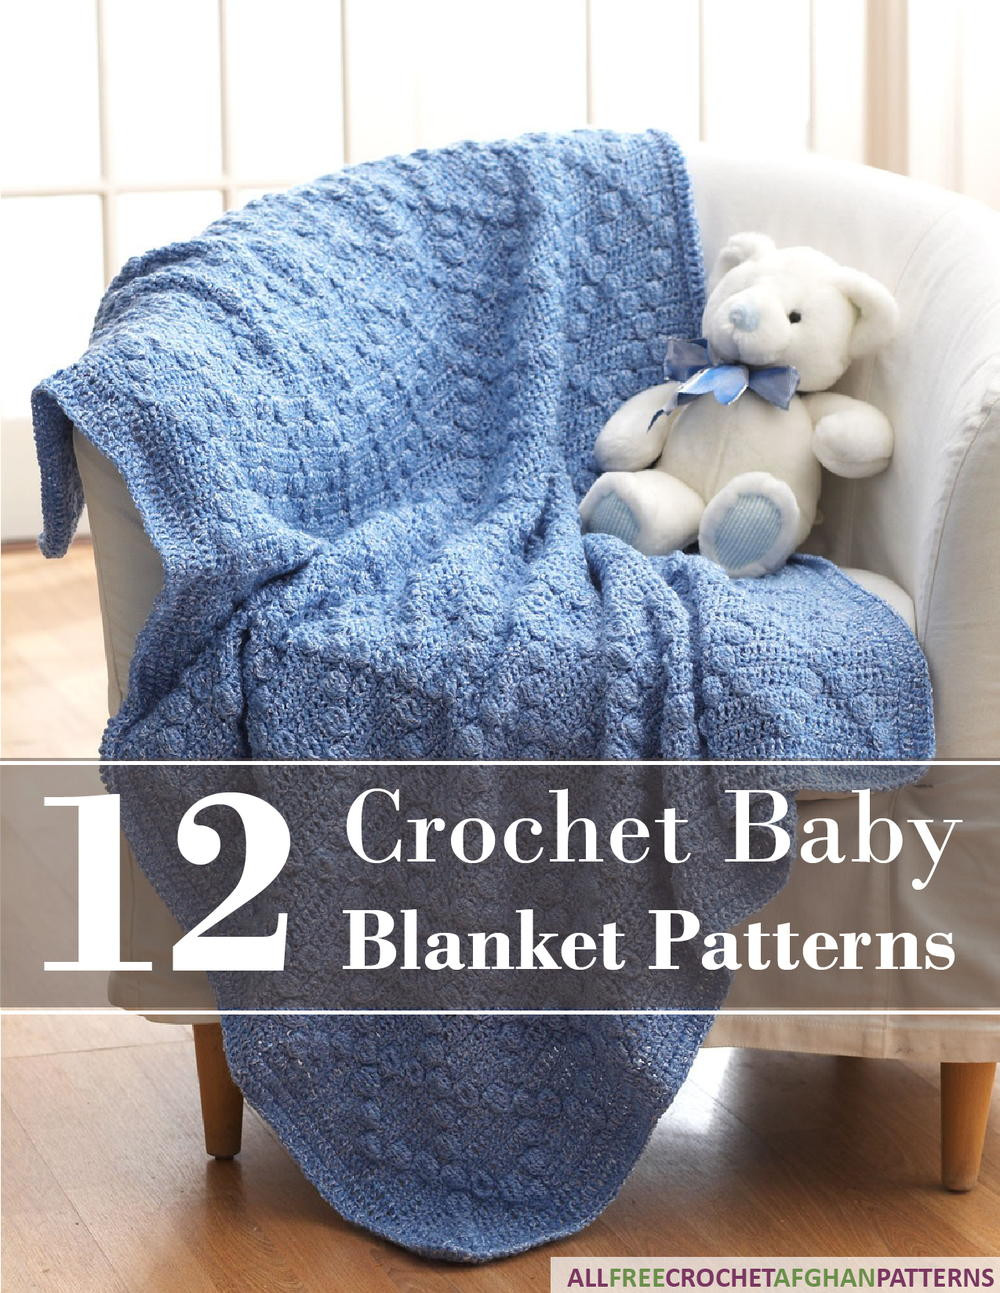 Baby Boy Crochet Blanket Patterns Elegant 12 Crochet Baby Blanket Patterns Free Ebook Of Baby Boy Crochet Blanket Patterns New Free Baby Boy Crochet Blanket Patterns